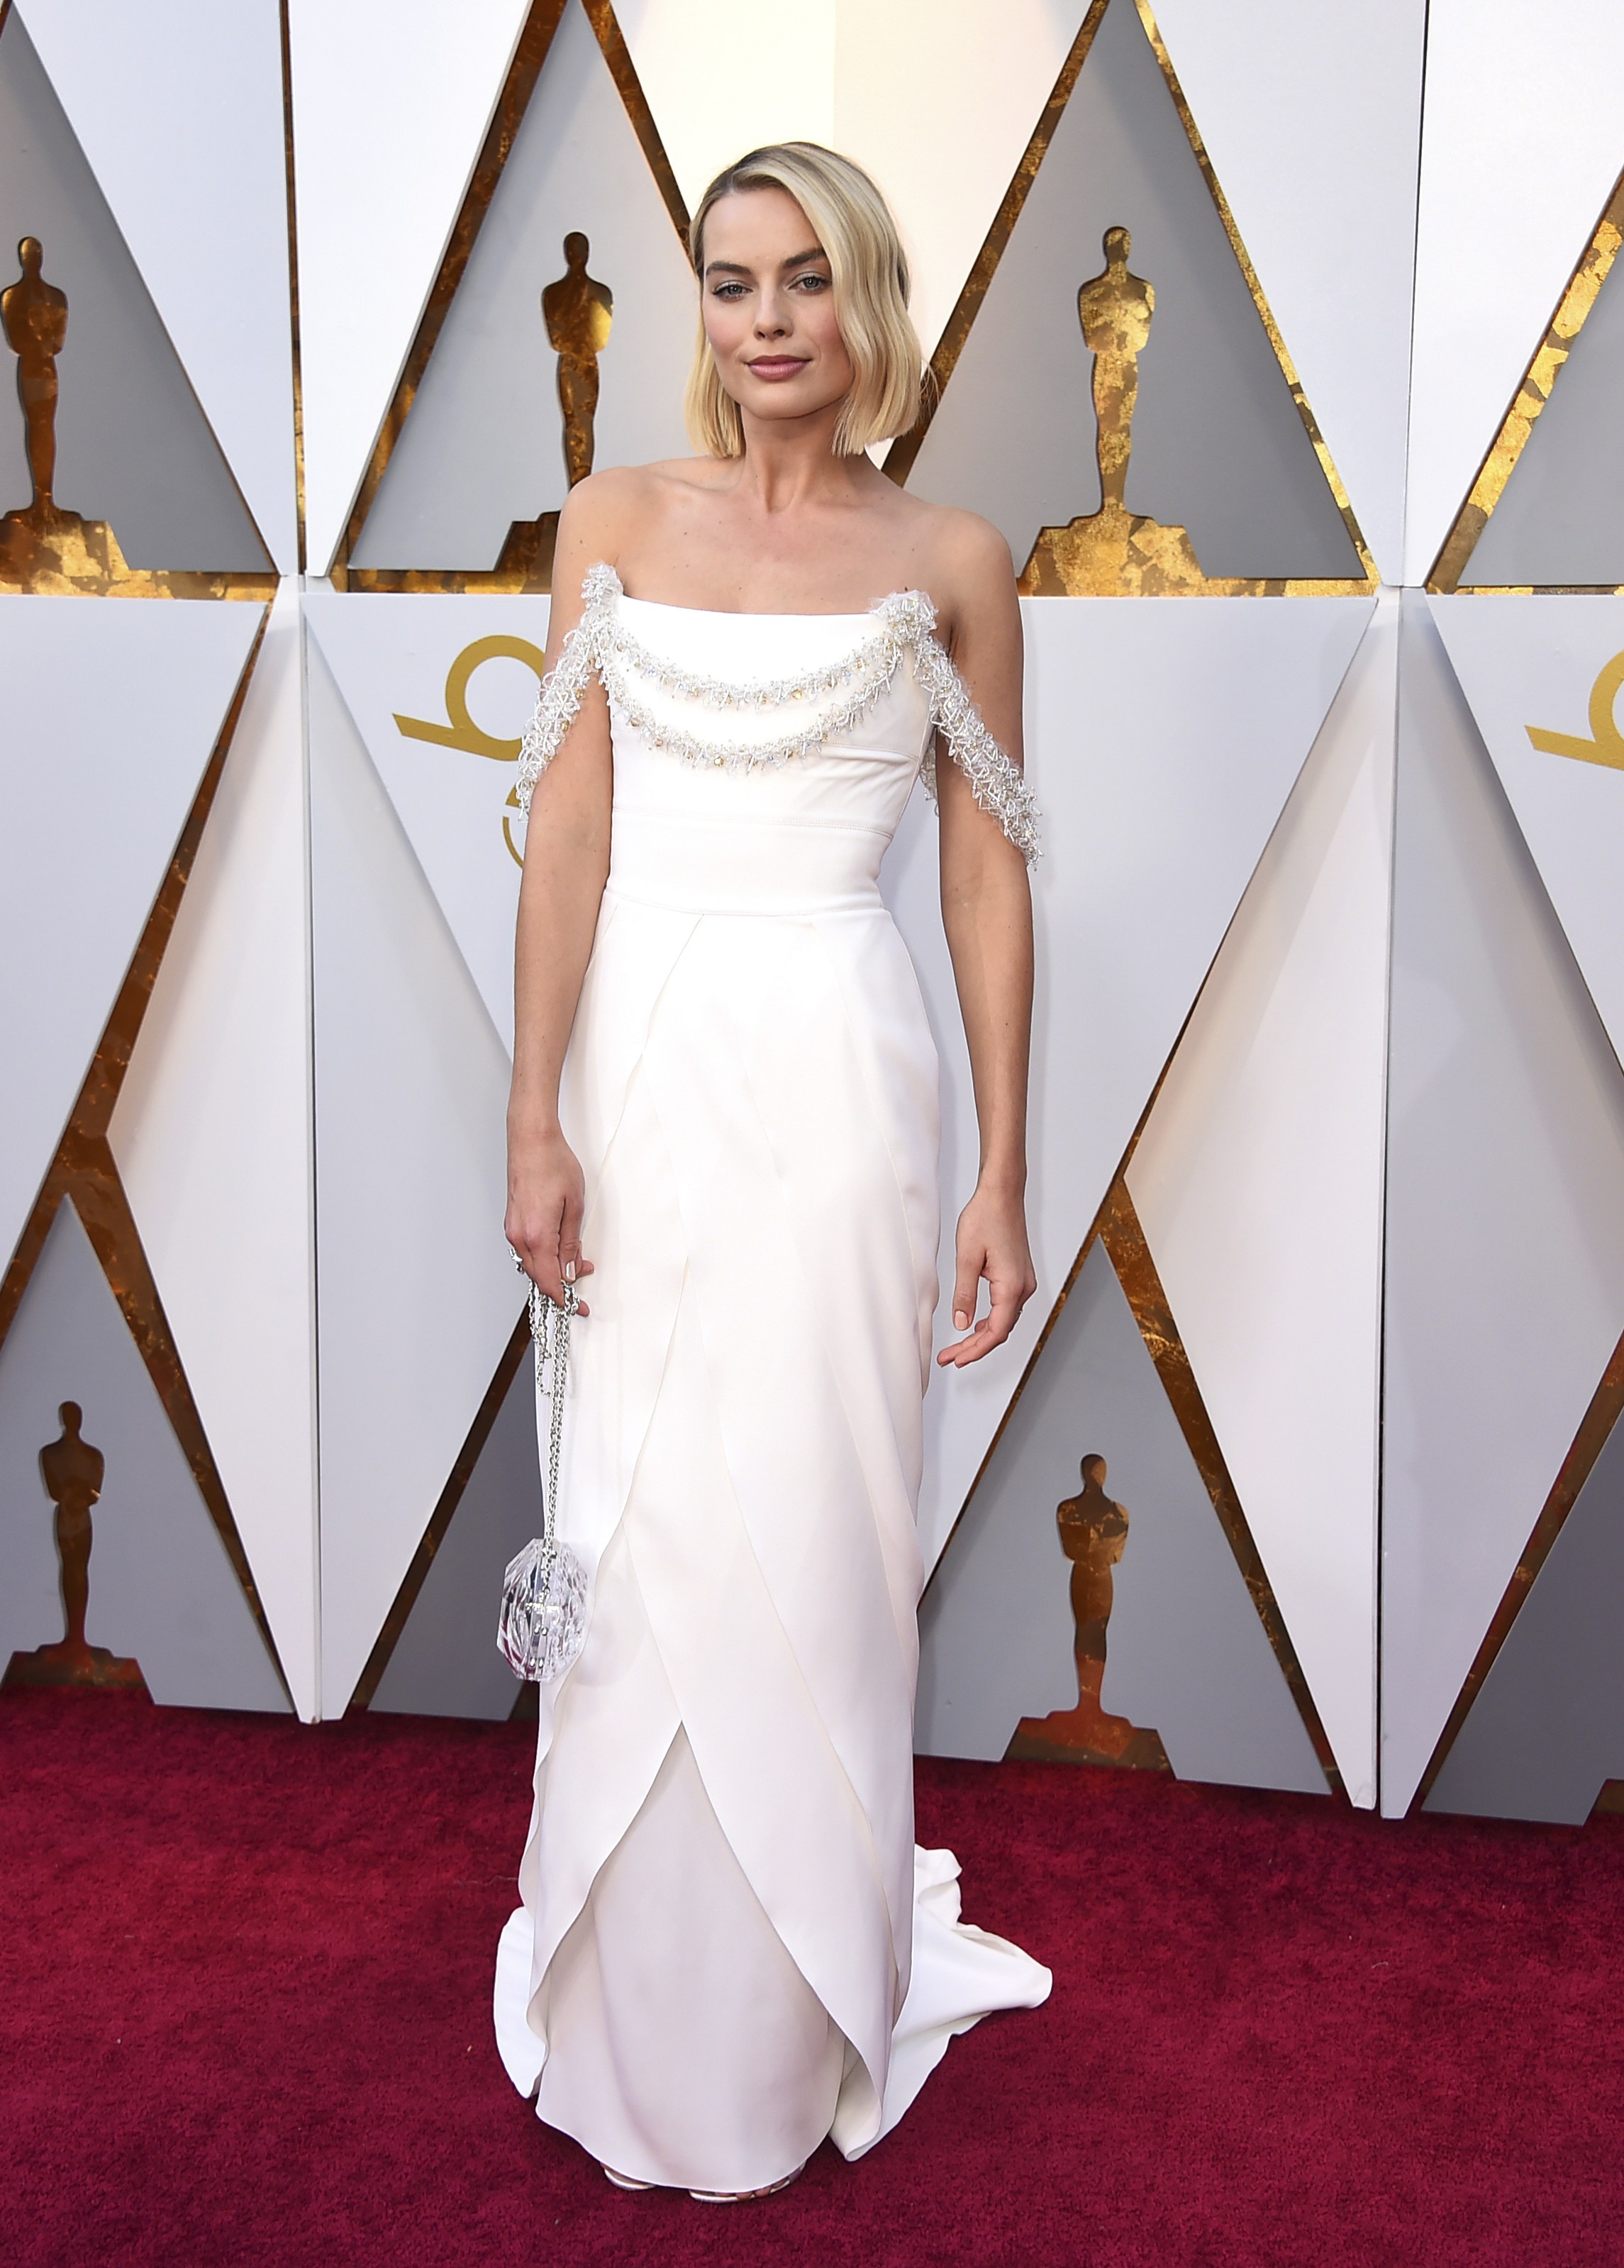 <div class='meta'><div class='origin-logo' data-origin='none'></div><span class='caption-text' data-credit='Jordan Strauss/Invision/AP'>Margot Robbie, nominated for Best Actress for ''I, Tonya,'' arrives at the Oscars on Sunday, March 4, 2018, at the Dolby Theatre in Los Angeles.</span></div>